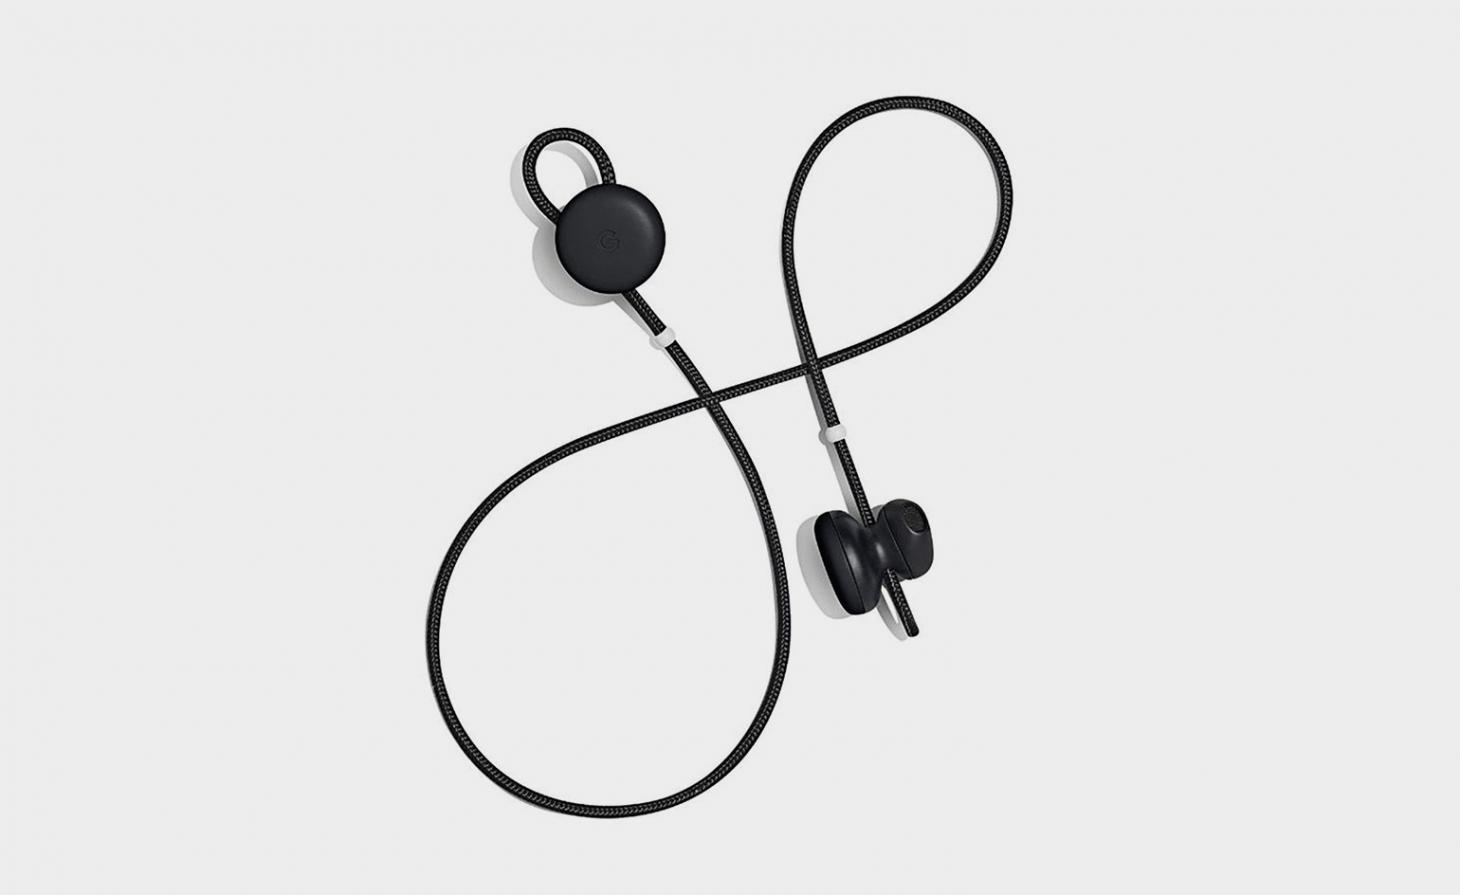 pixel ear buds by google